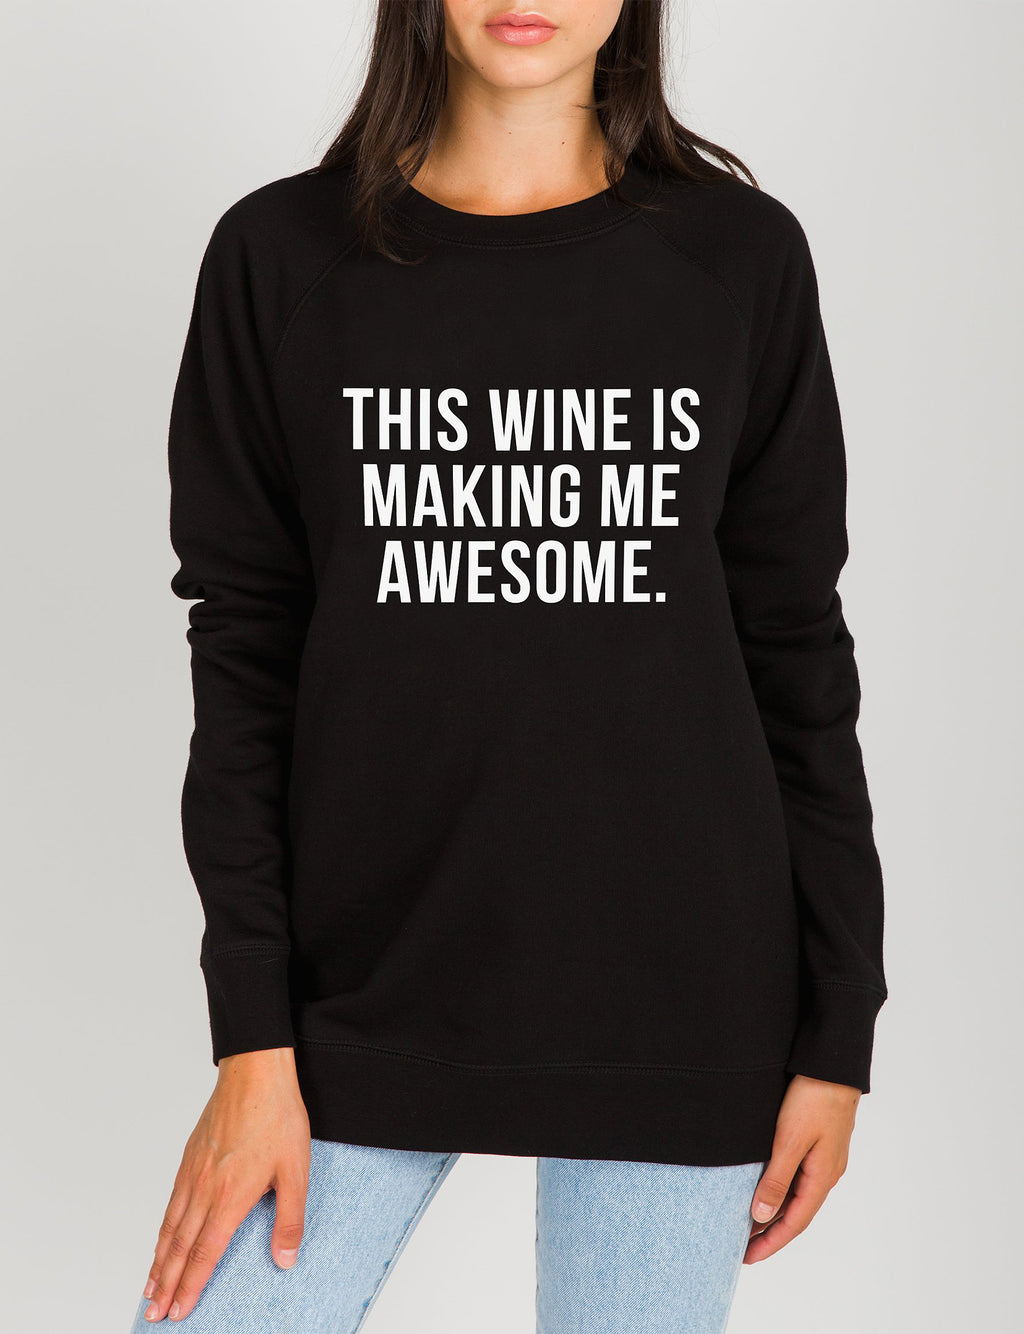 Wine Crew Sweatshirt in Black